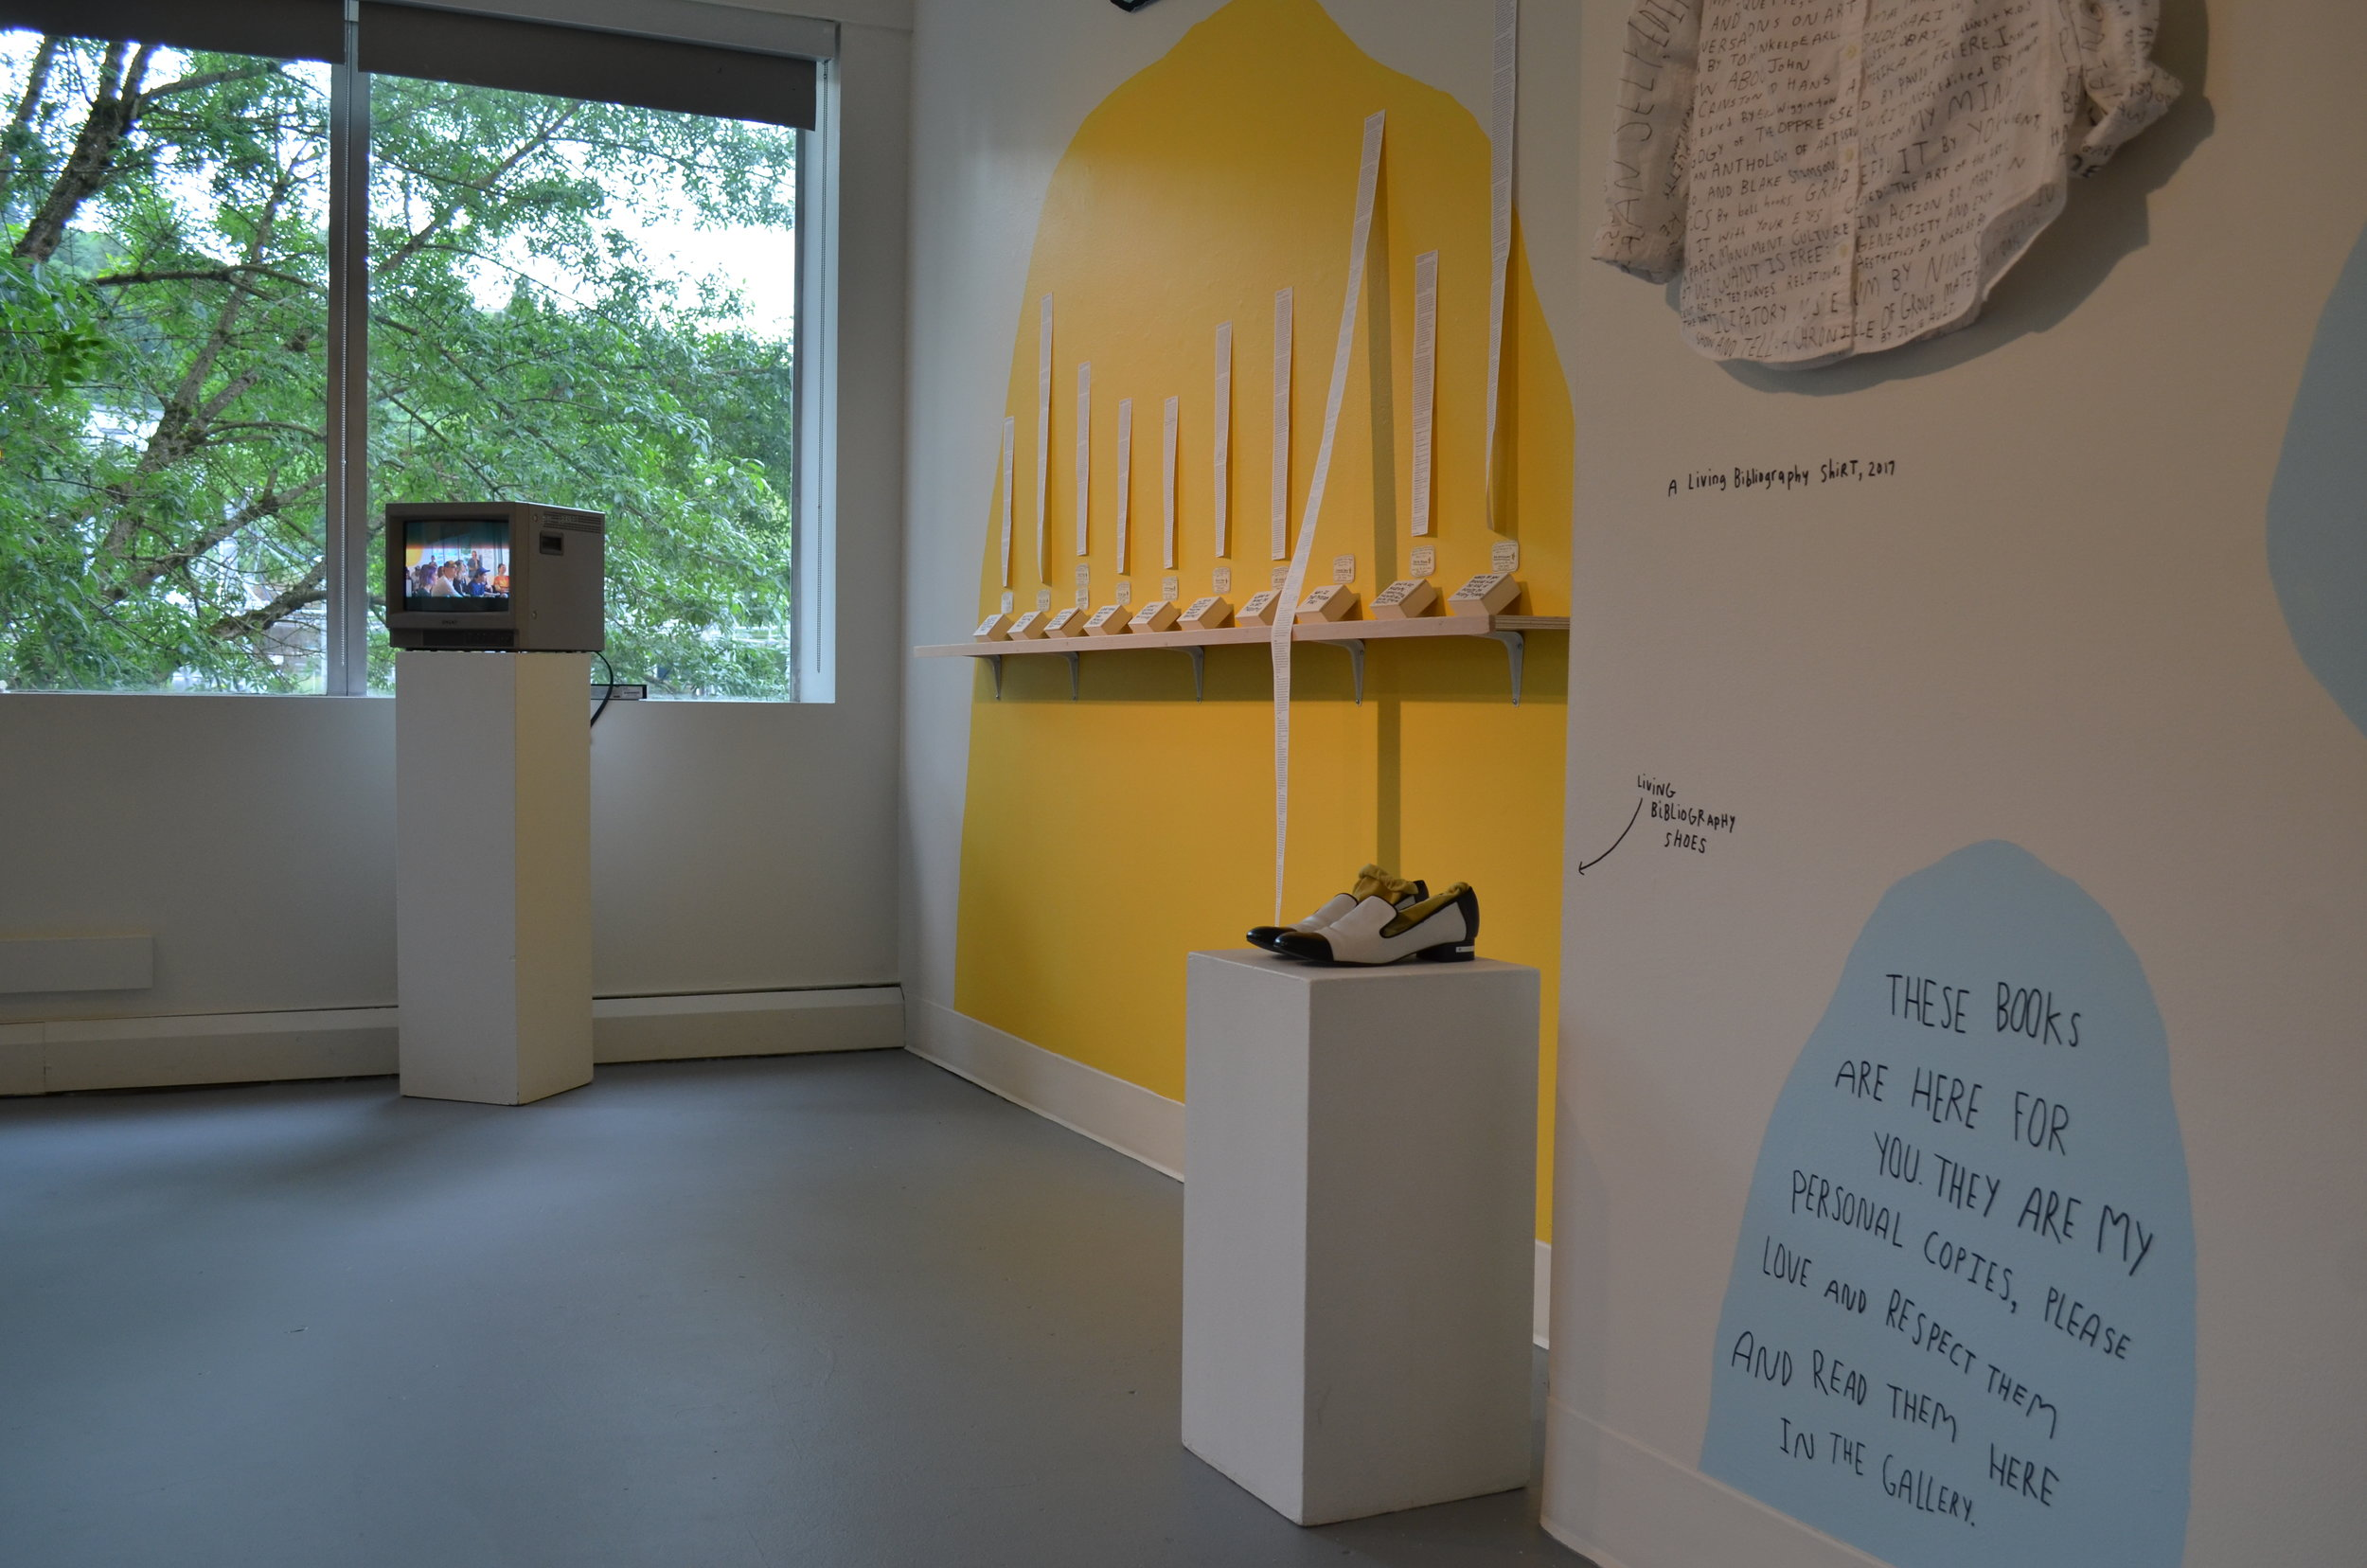 The readings were recorded, and for the rest of the exhibition, you could watch their readings on a TV in the gallery.